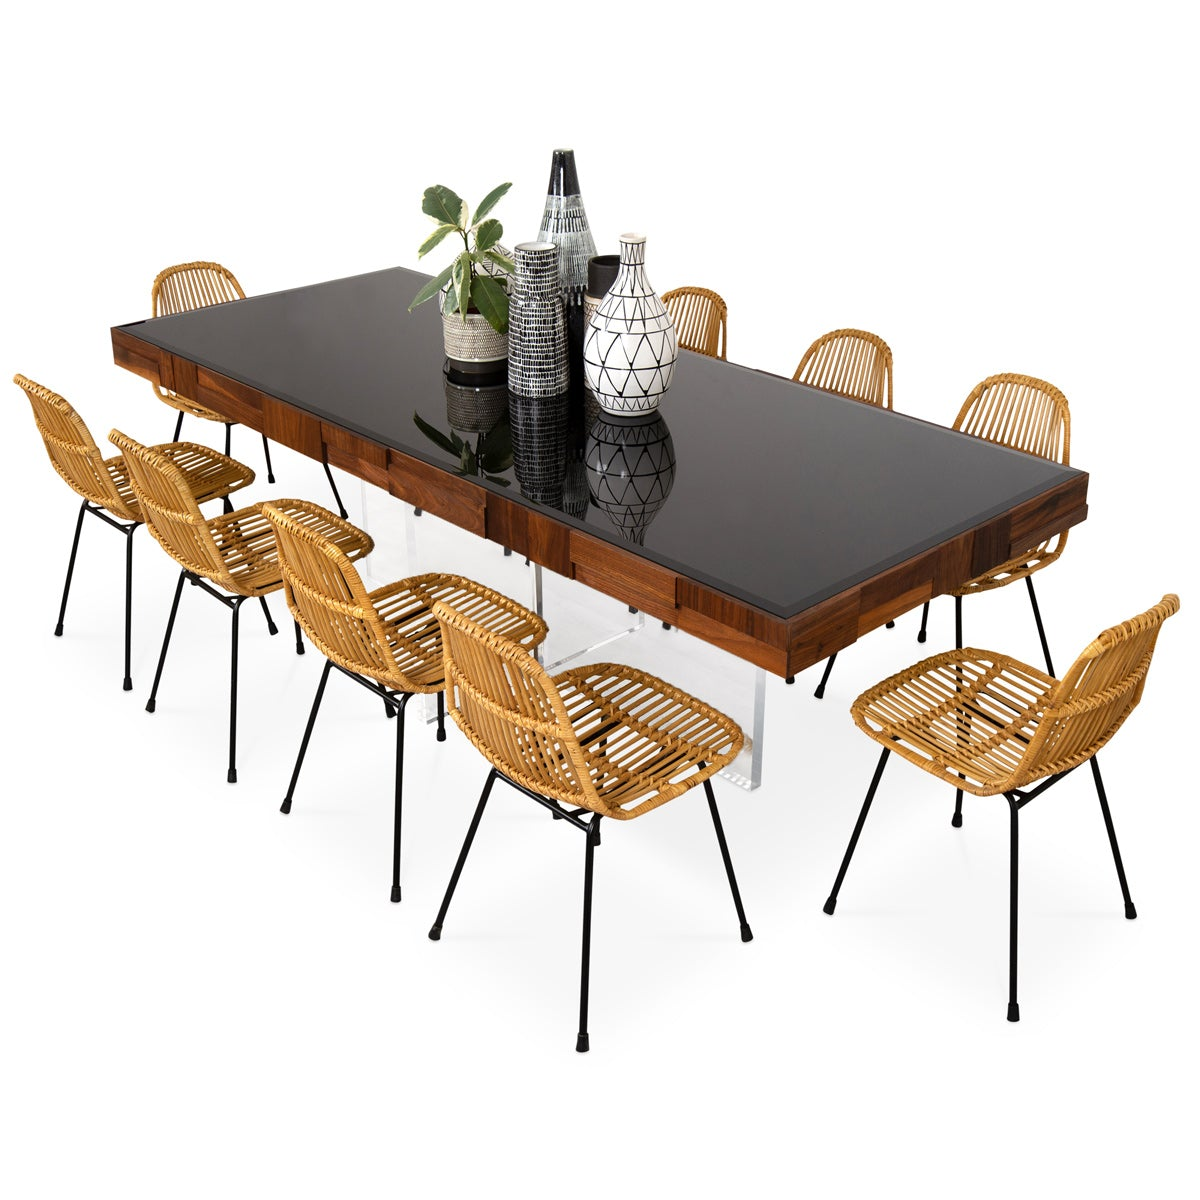 Kubist Dining Table with Cross Lucite Base - ModShop1.com